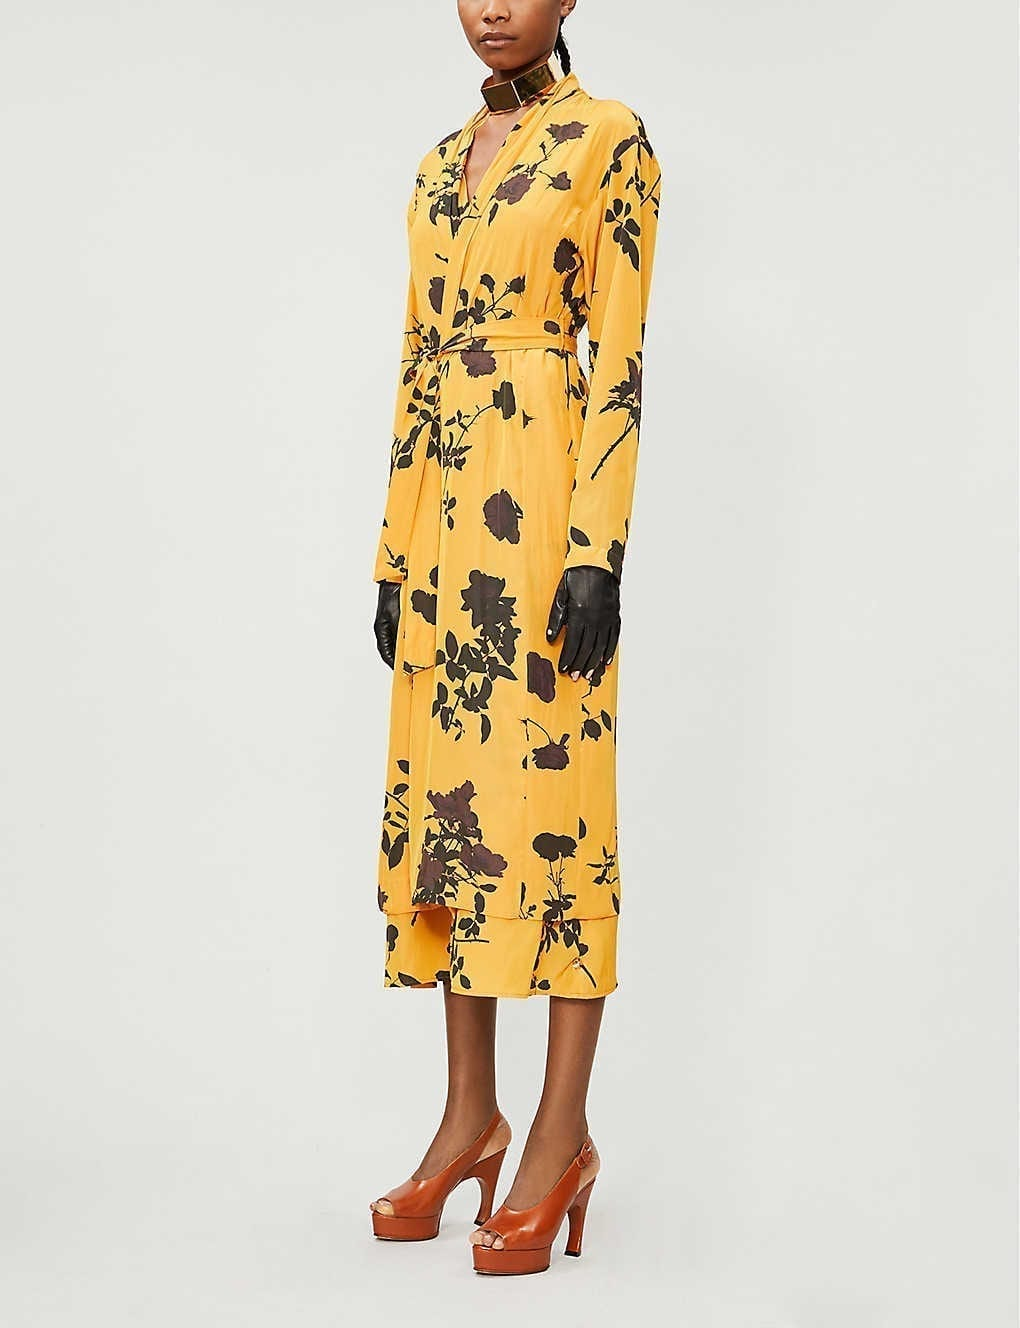 DRIES VAN NOTEN Shawl-collar Floral-print Crepe Midi Dress